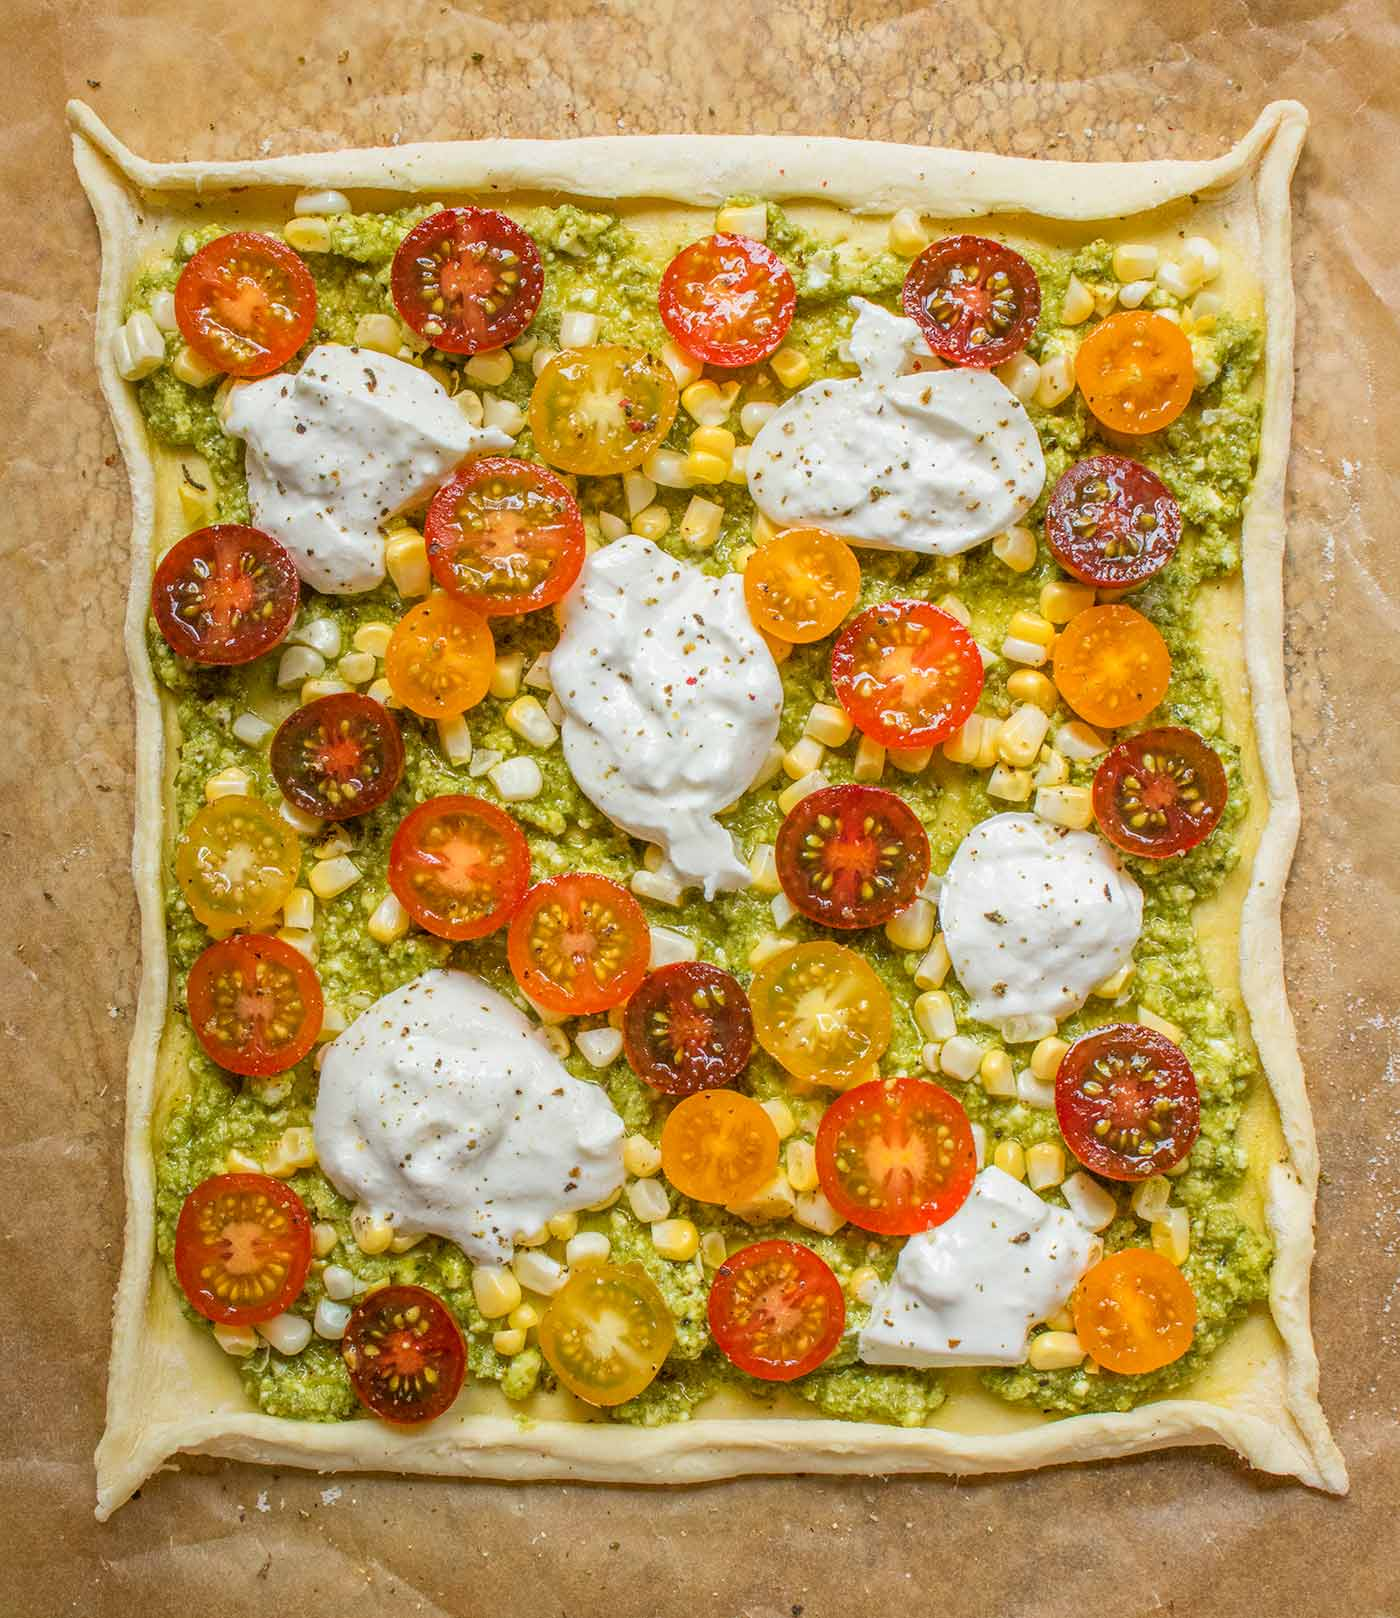 The assembled Puff Pastry Tomato Tart, ready to bake